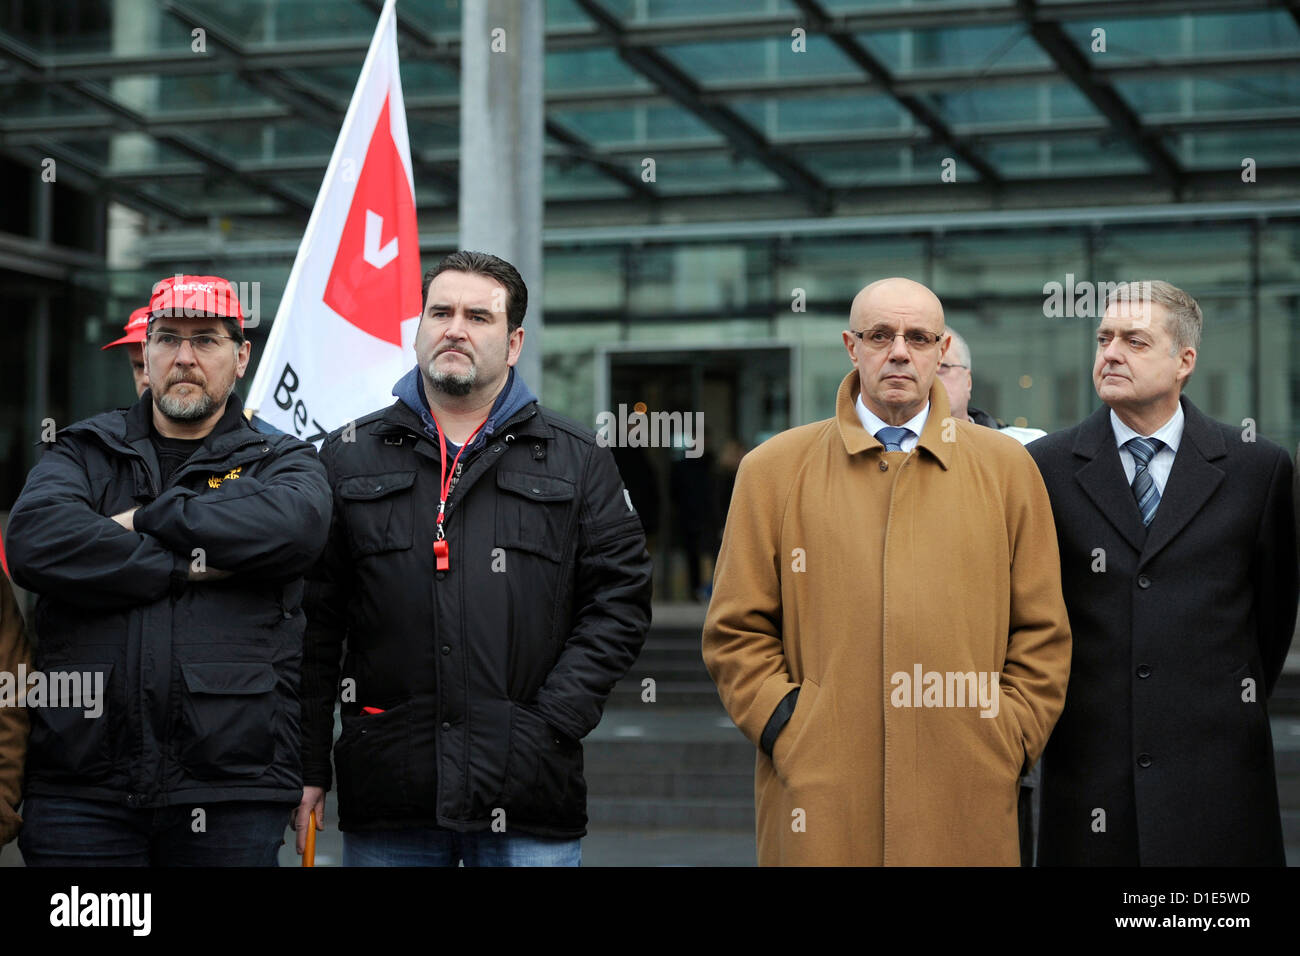 Board members Eberhard Klein (r) and Franz Sommerfeld (2-r) stand at the headquarters of DuMont while employees - Stock Image